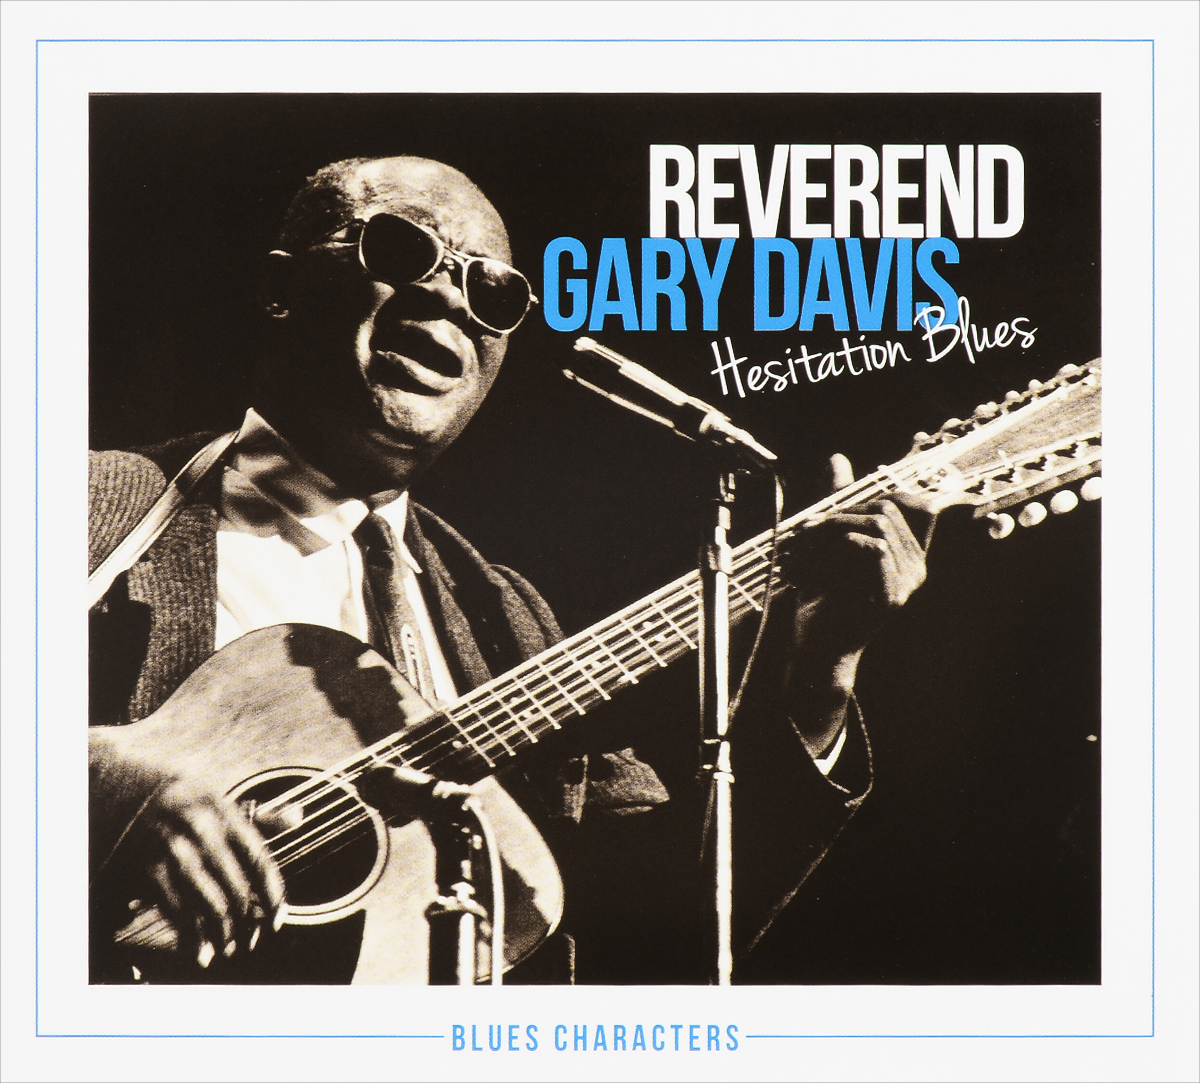 Гари Дэвис Reverend Gary Davis. Hesitation Blues (2 CD)